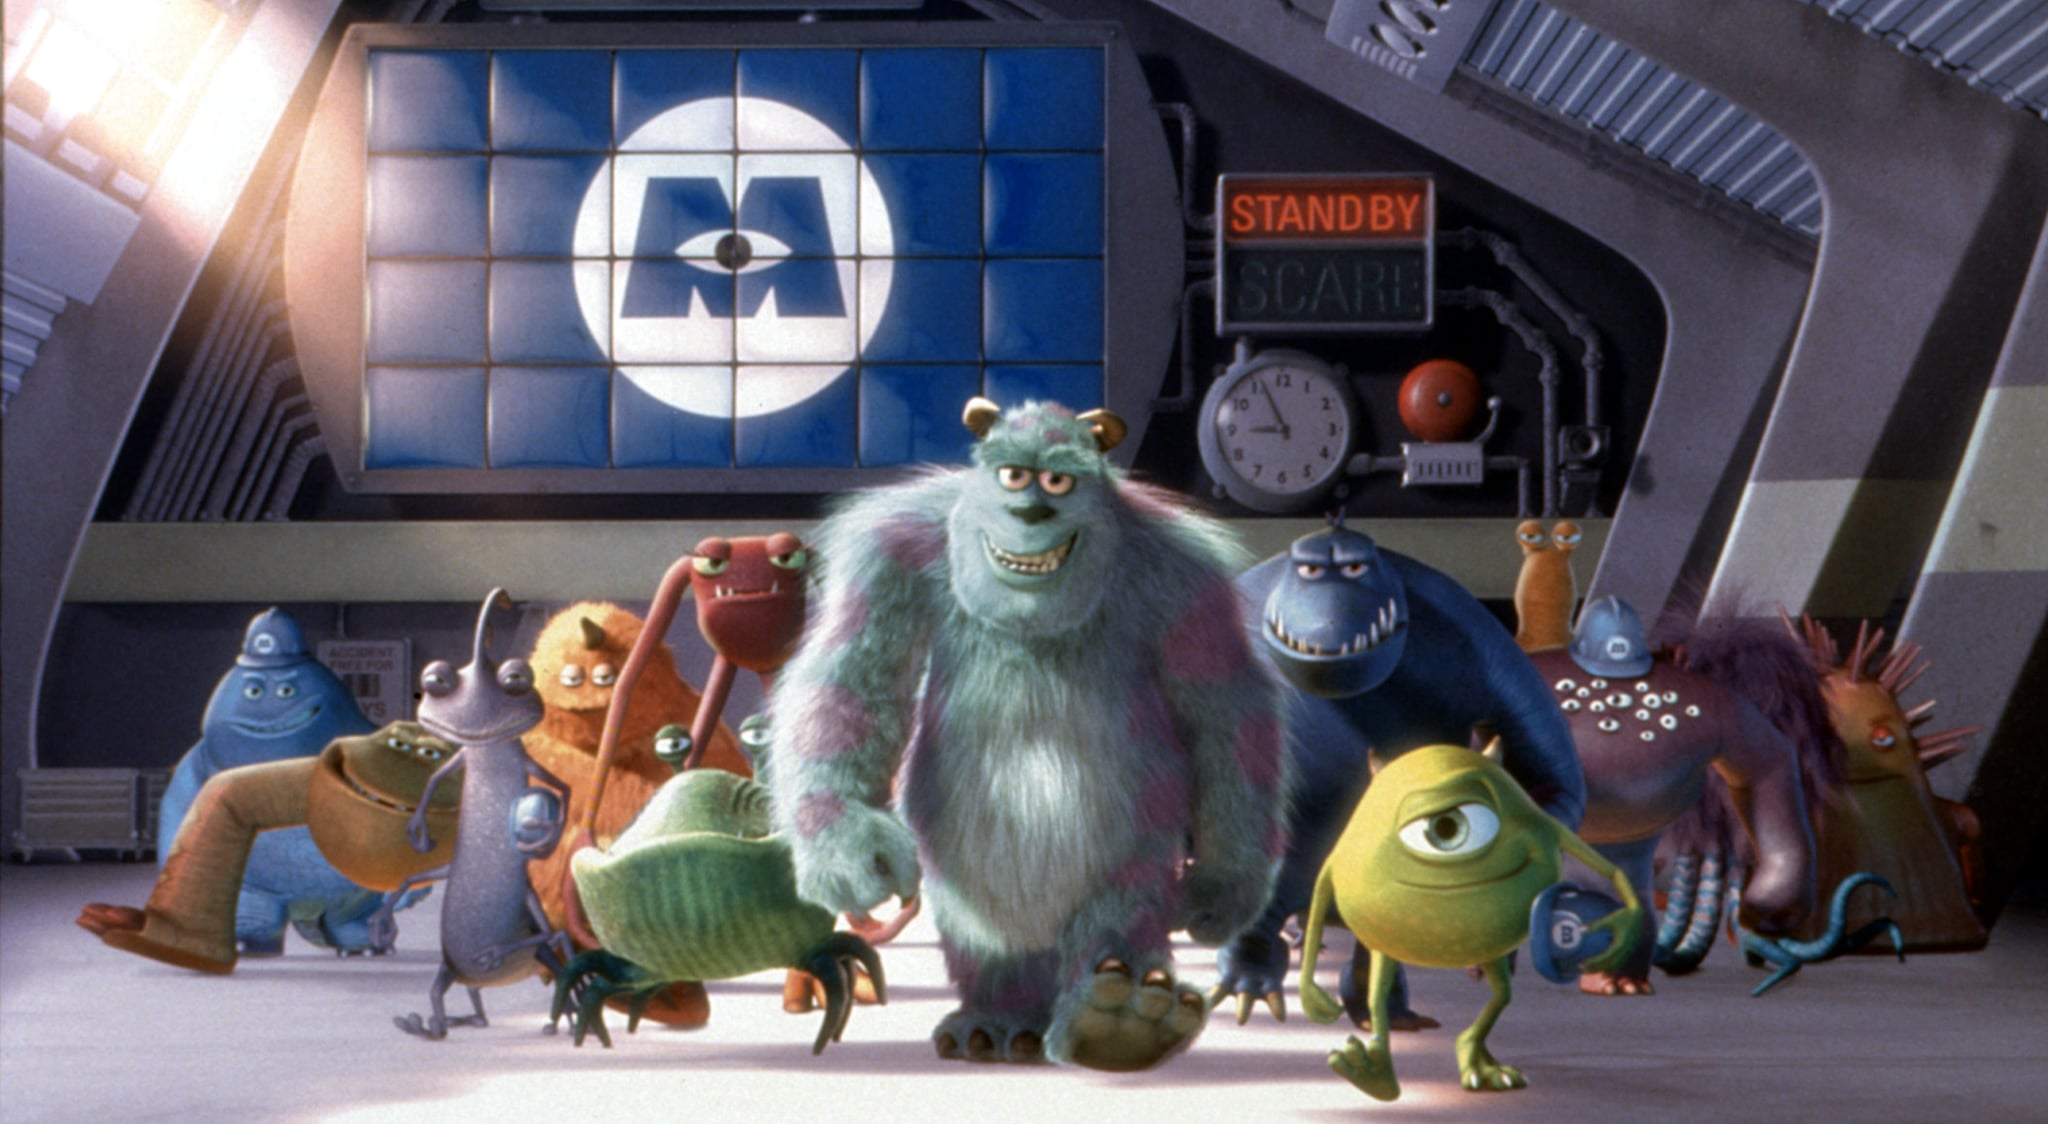 A Monsters Inc. Show Is Headed to Disney Plus, and Yep, Billy Crystal and John Goodman Are In